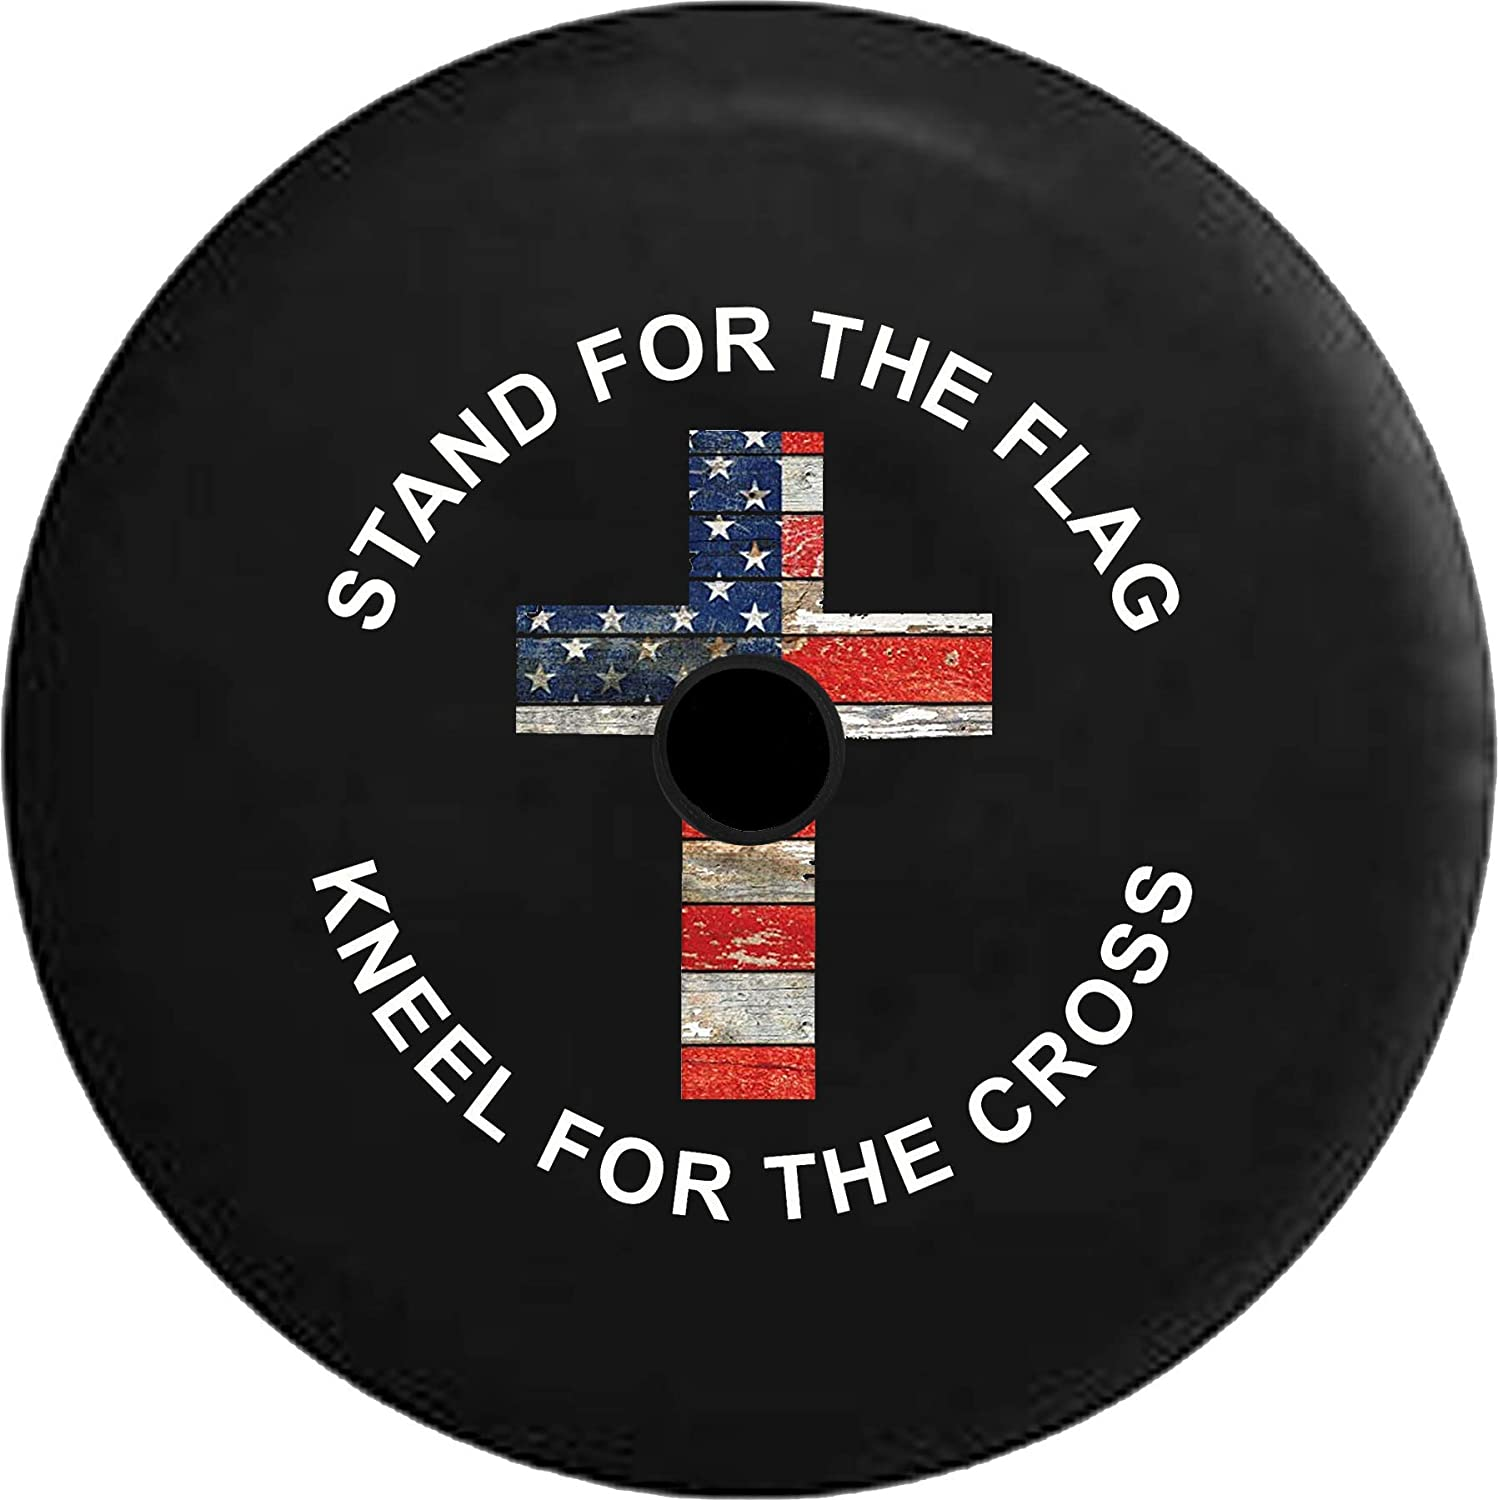 JL Spare Tire Memphis Mall 70% OFF Outlet Cover Stand The with Bac Kneel Flag Cross